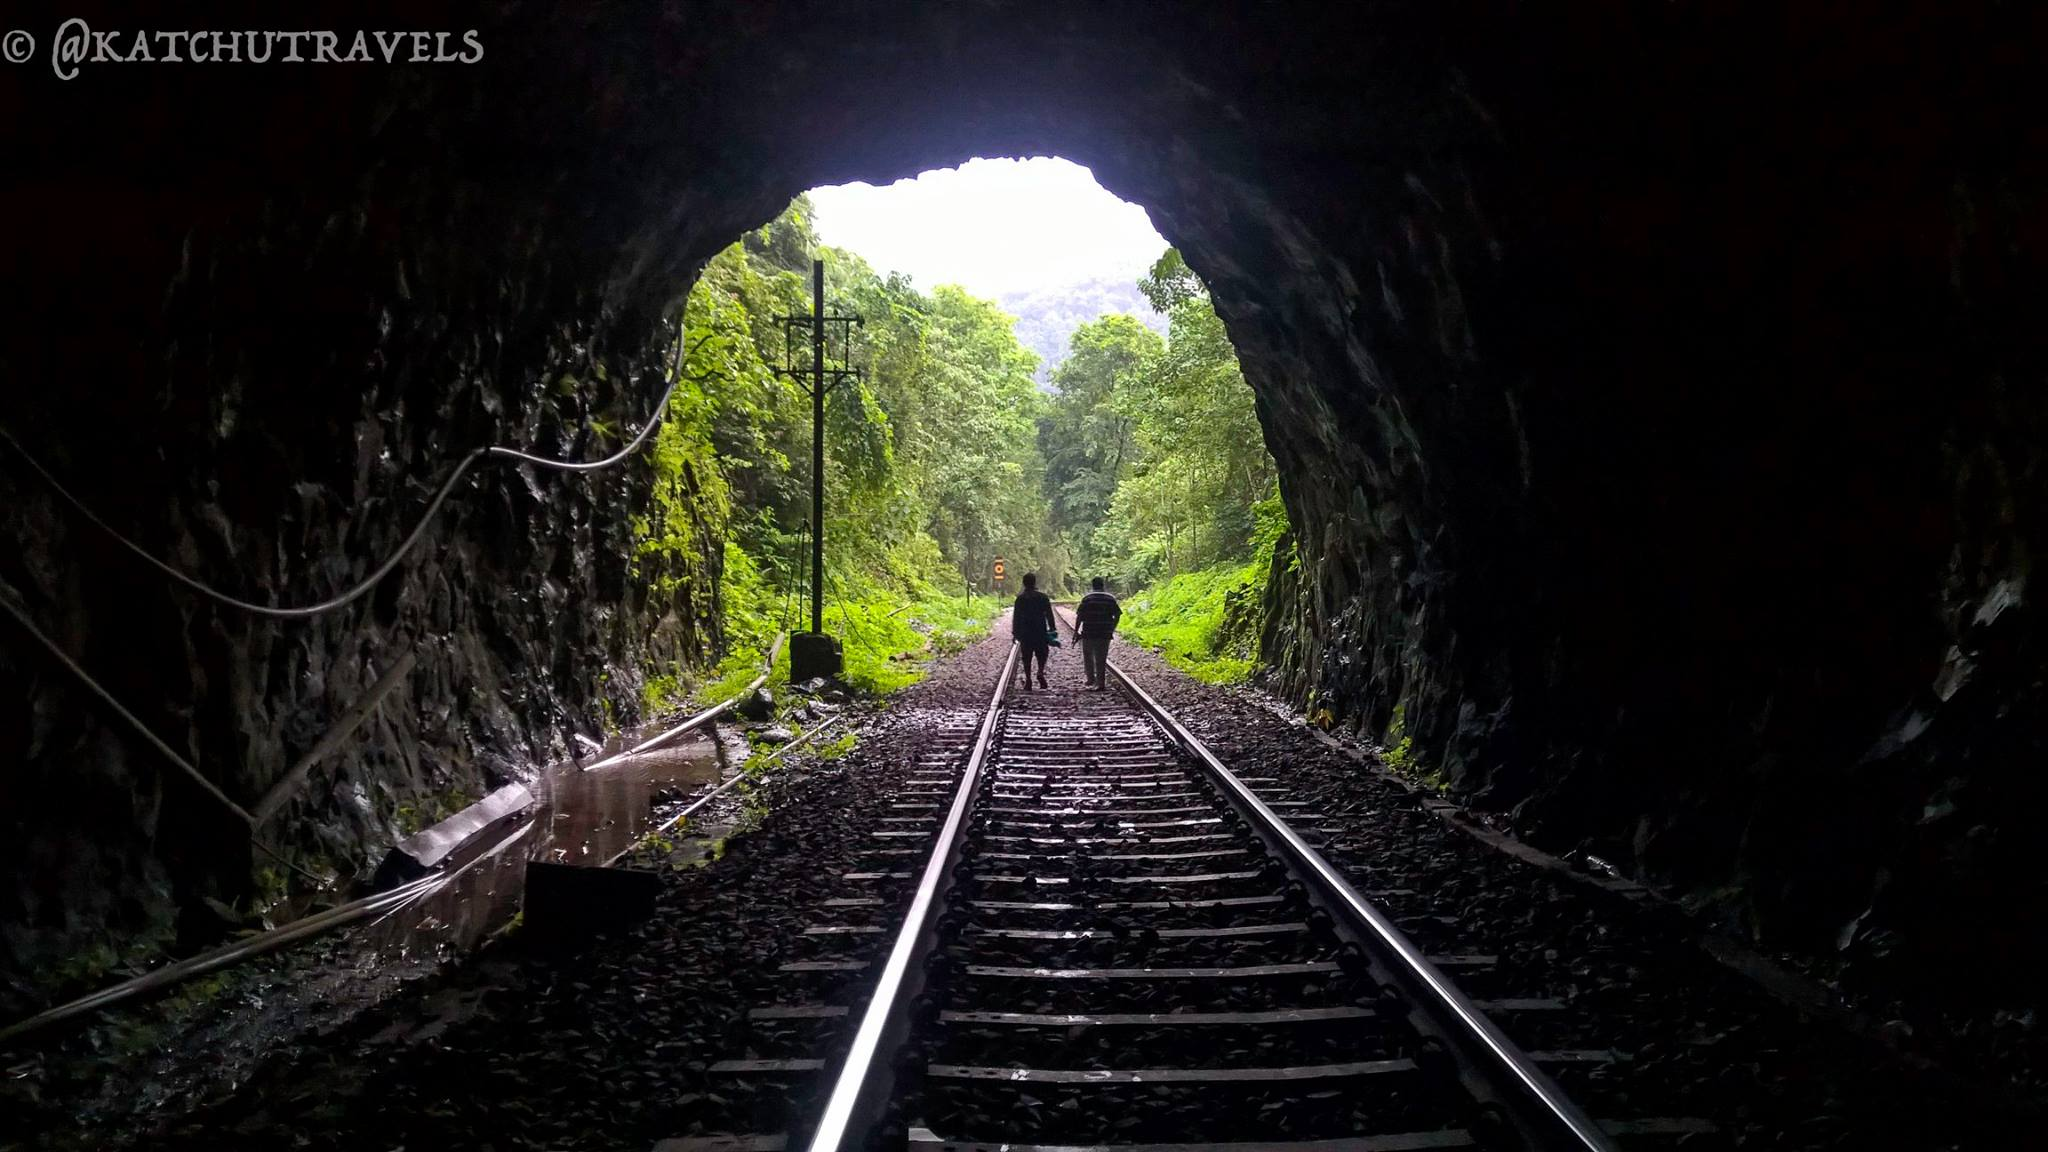 Trekking through the railway tracks in Goa on the Dudhsagar Waterfalls Trail